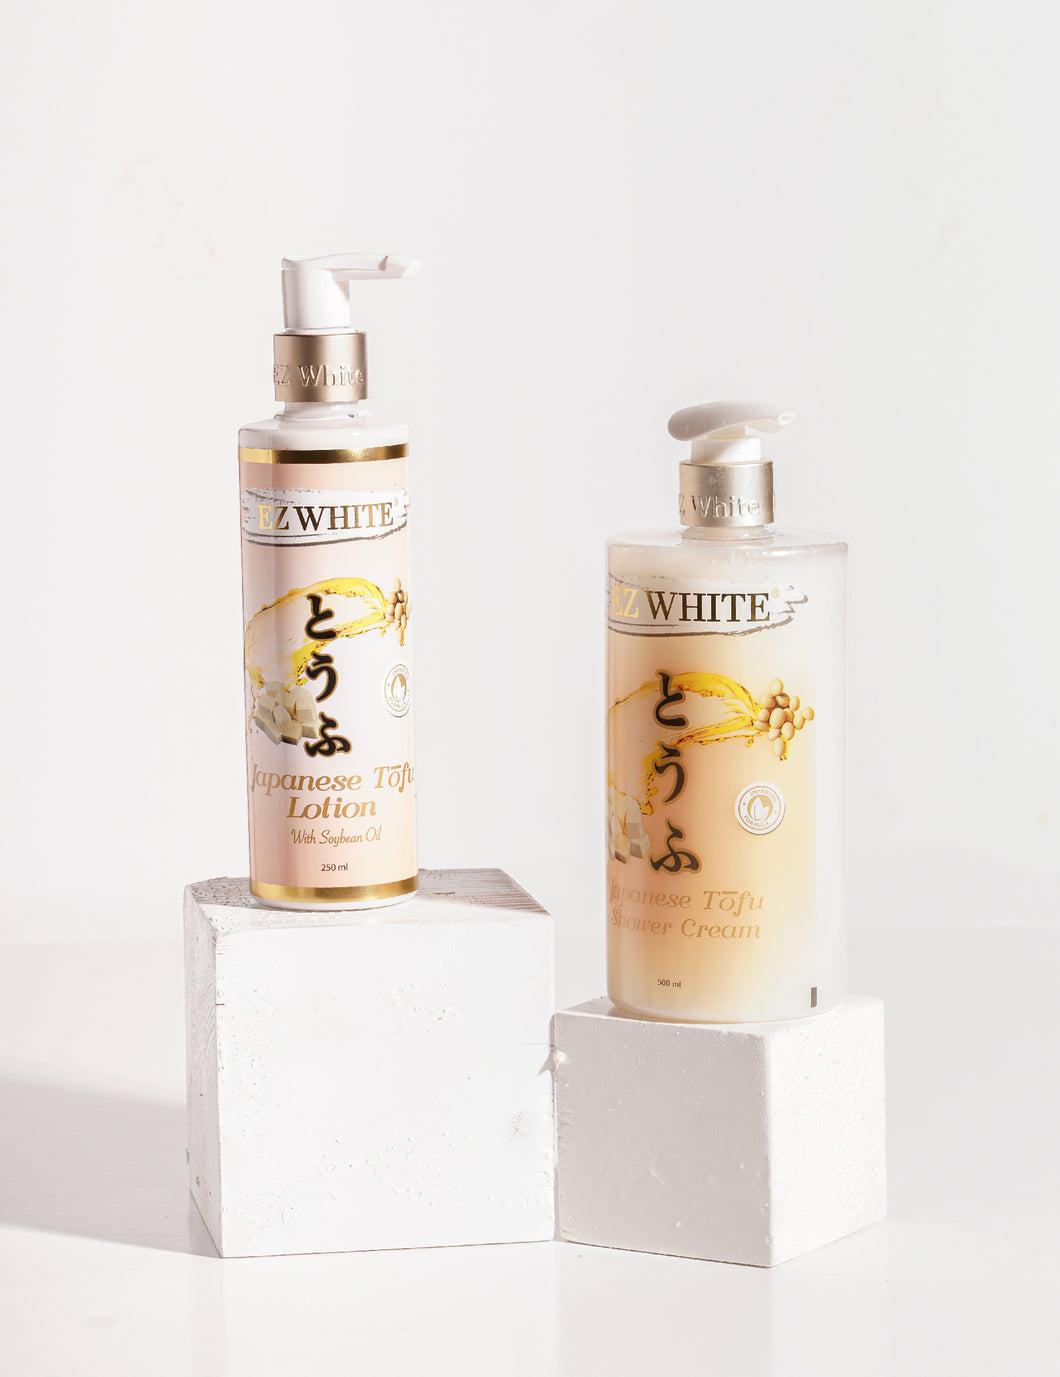 EZ White Japanese Tofu Bundling (1 Botol Lotion + 1 Botol Shower Cream)